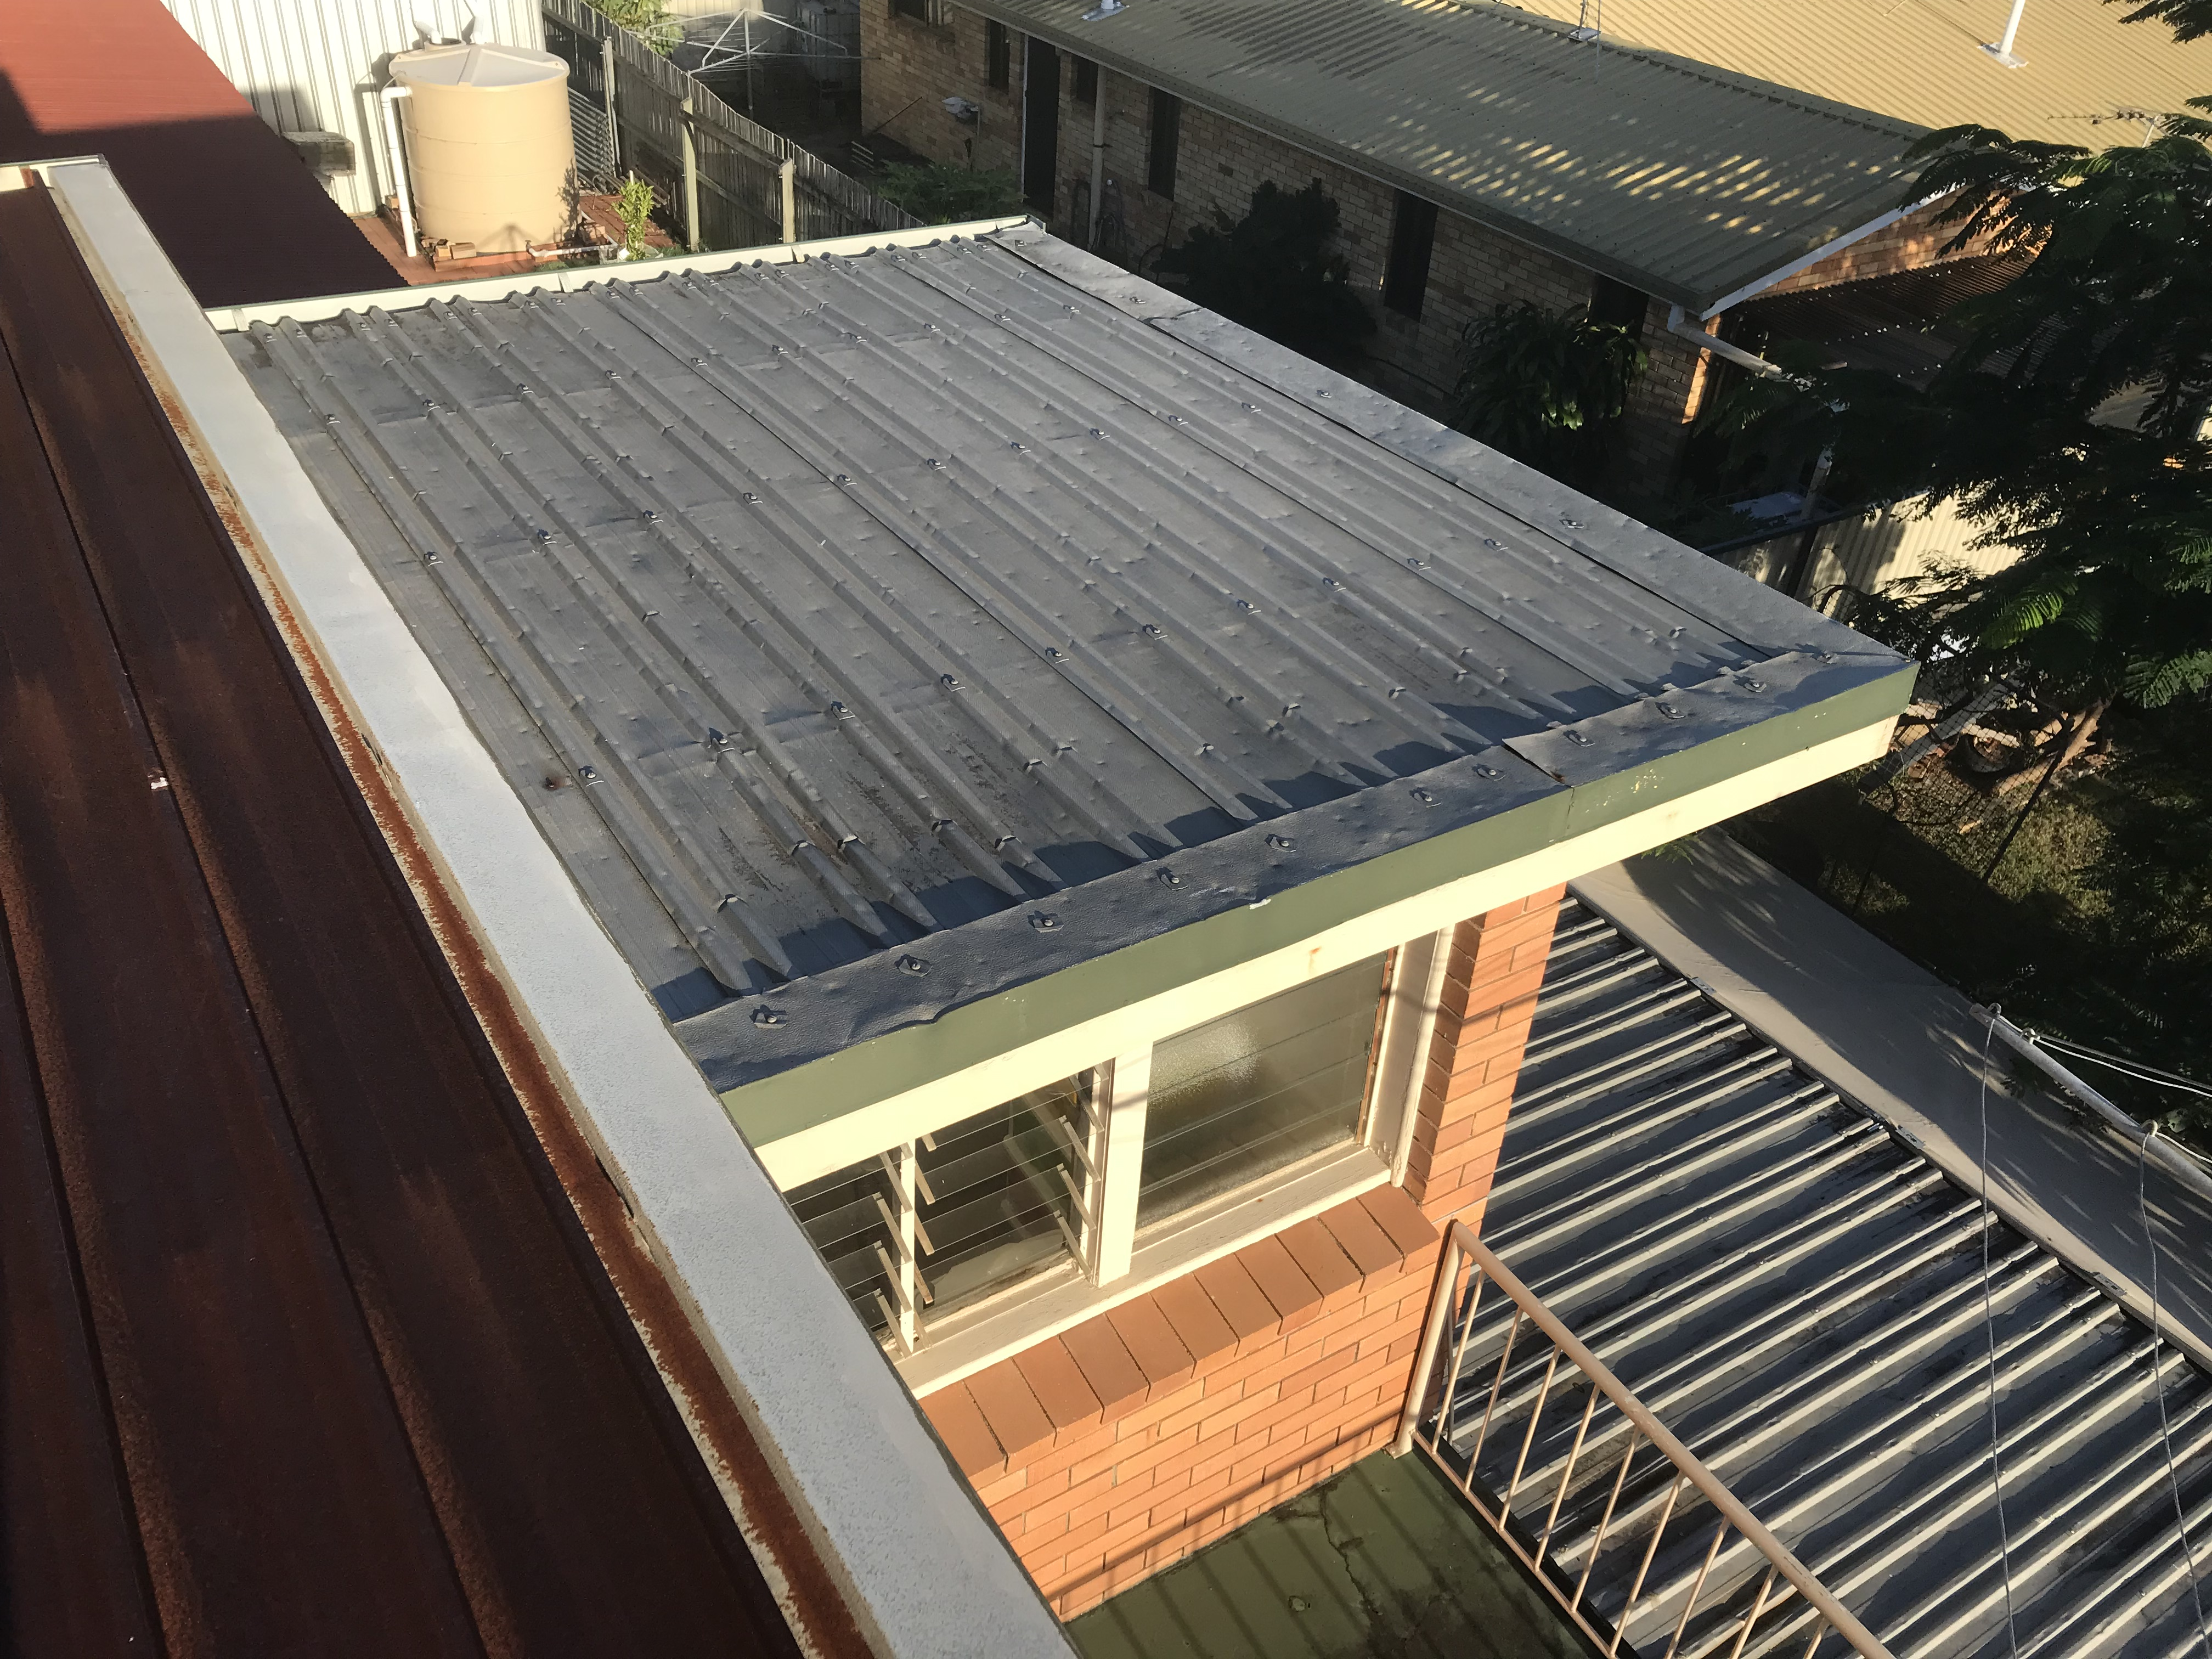 Flat roof with hail damage in brisbane